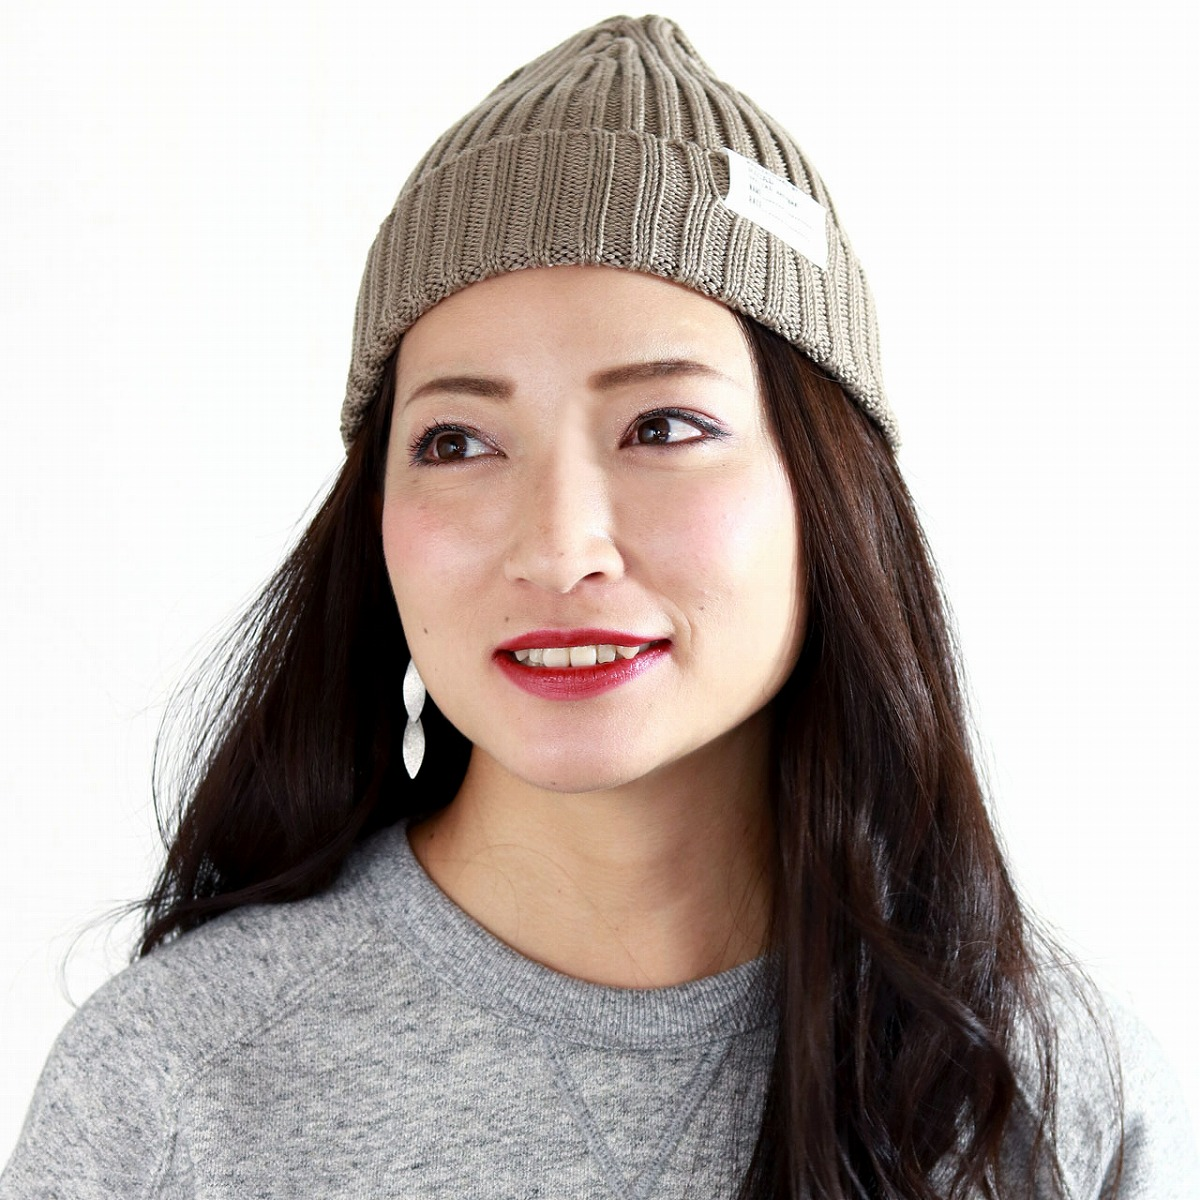 54aa48d49cfb0 It is a present hat man gift on beanie Shin pull   beige  beanie cap   Respect for the Aged Day in product made in lady s knit cap hat Japan racal  ニット ...